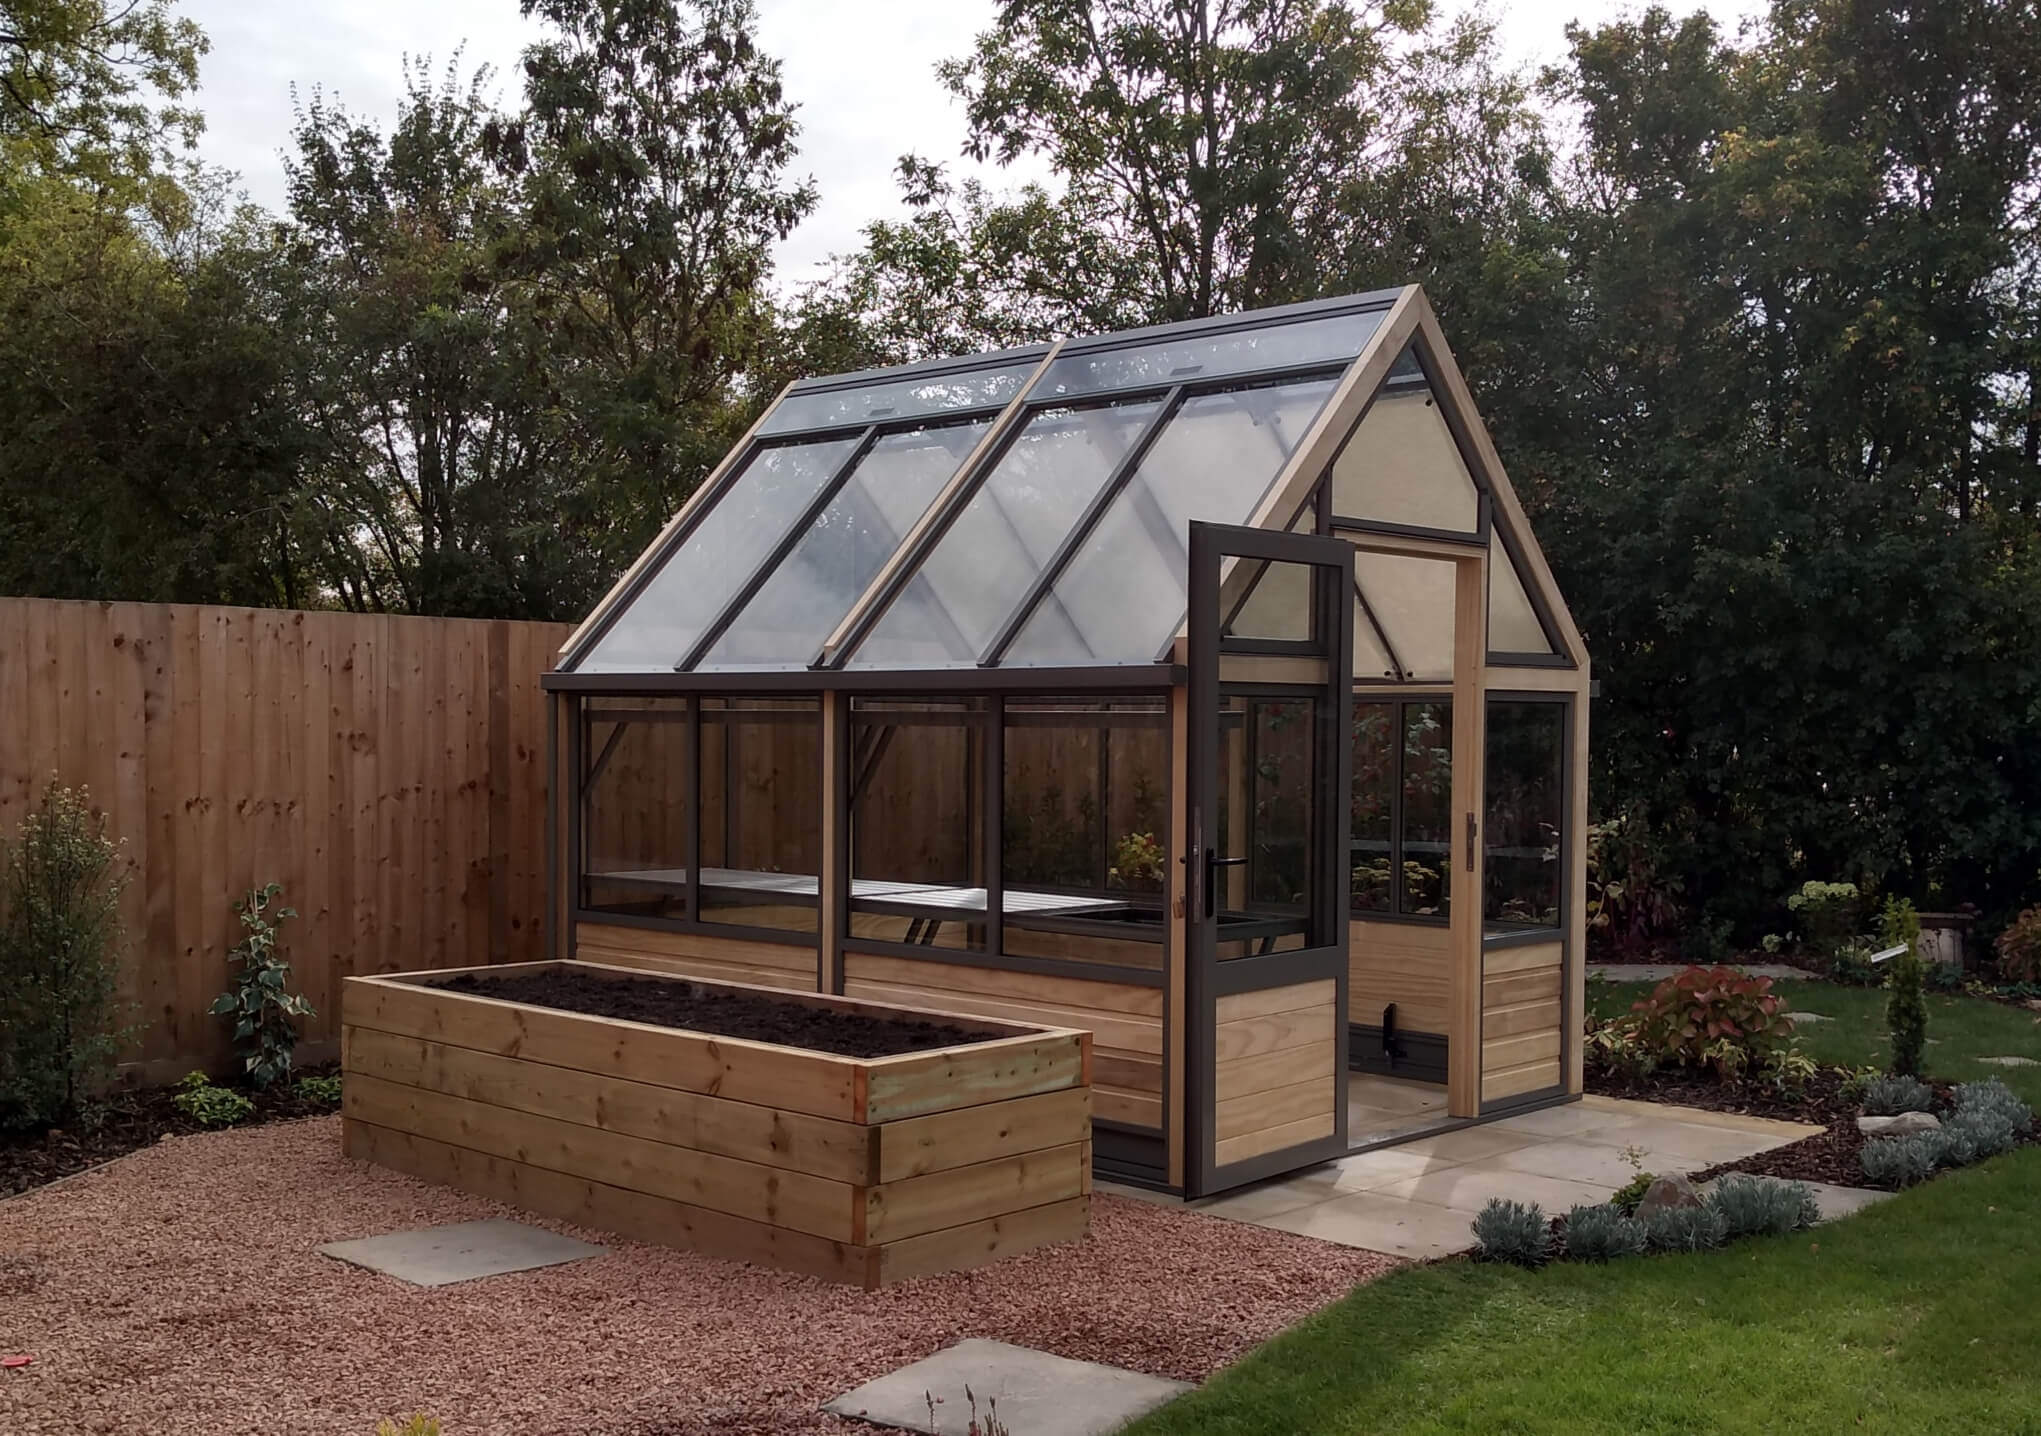 Greenhouse in wood measuring 8 foot by 10 foot